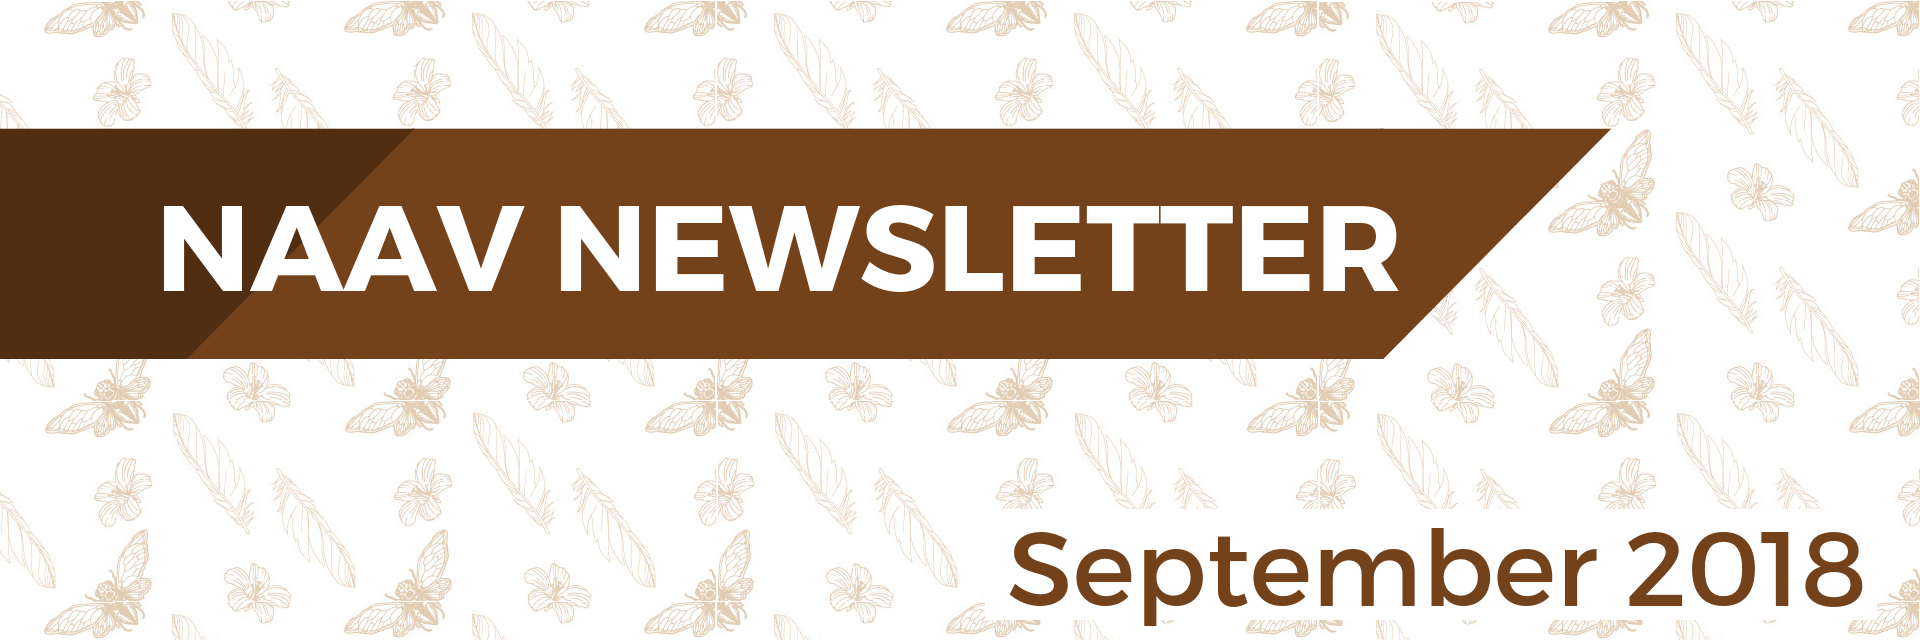 Newsletter Headers (1).png